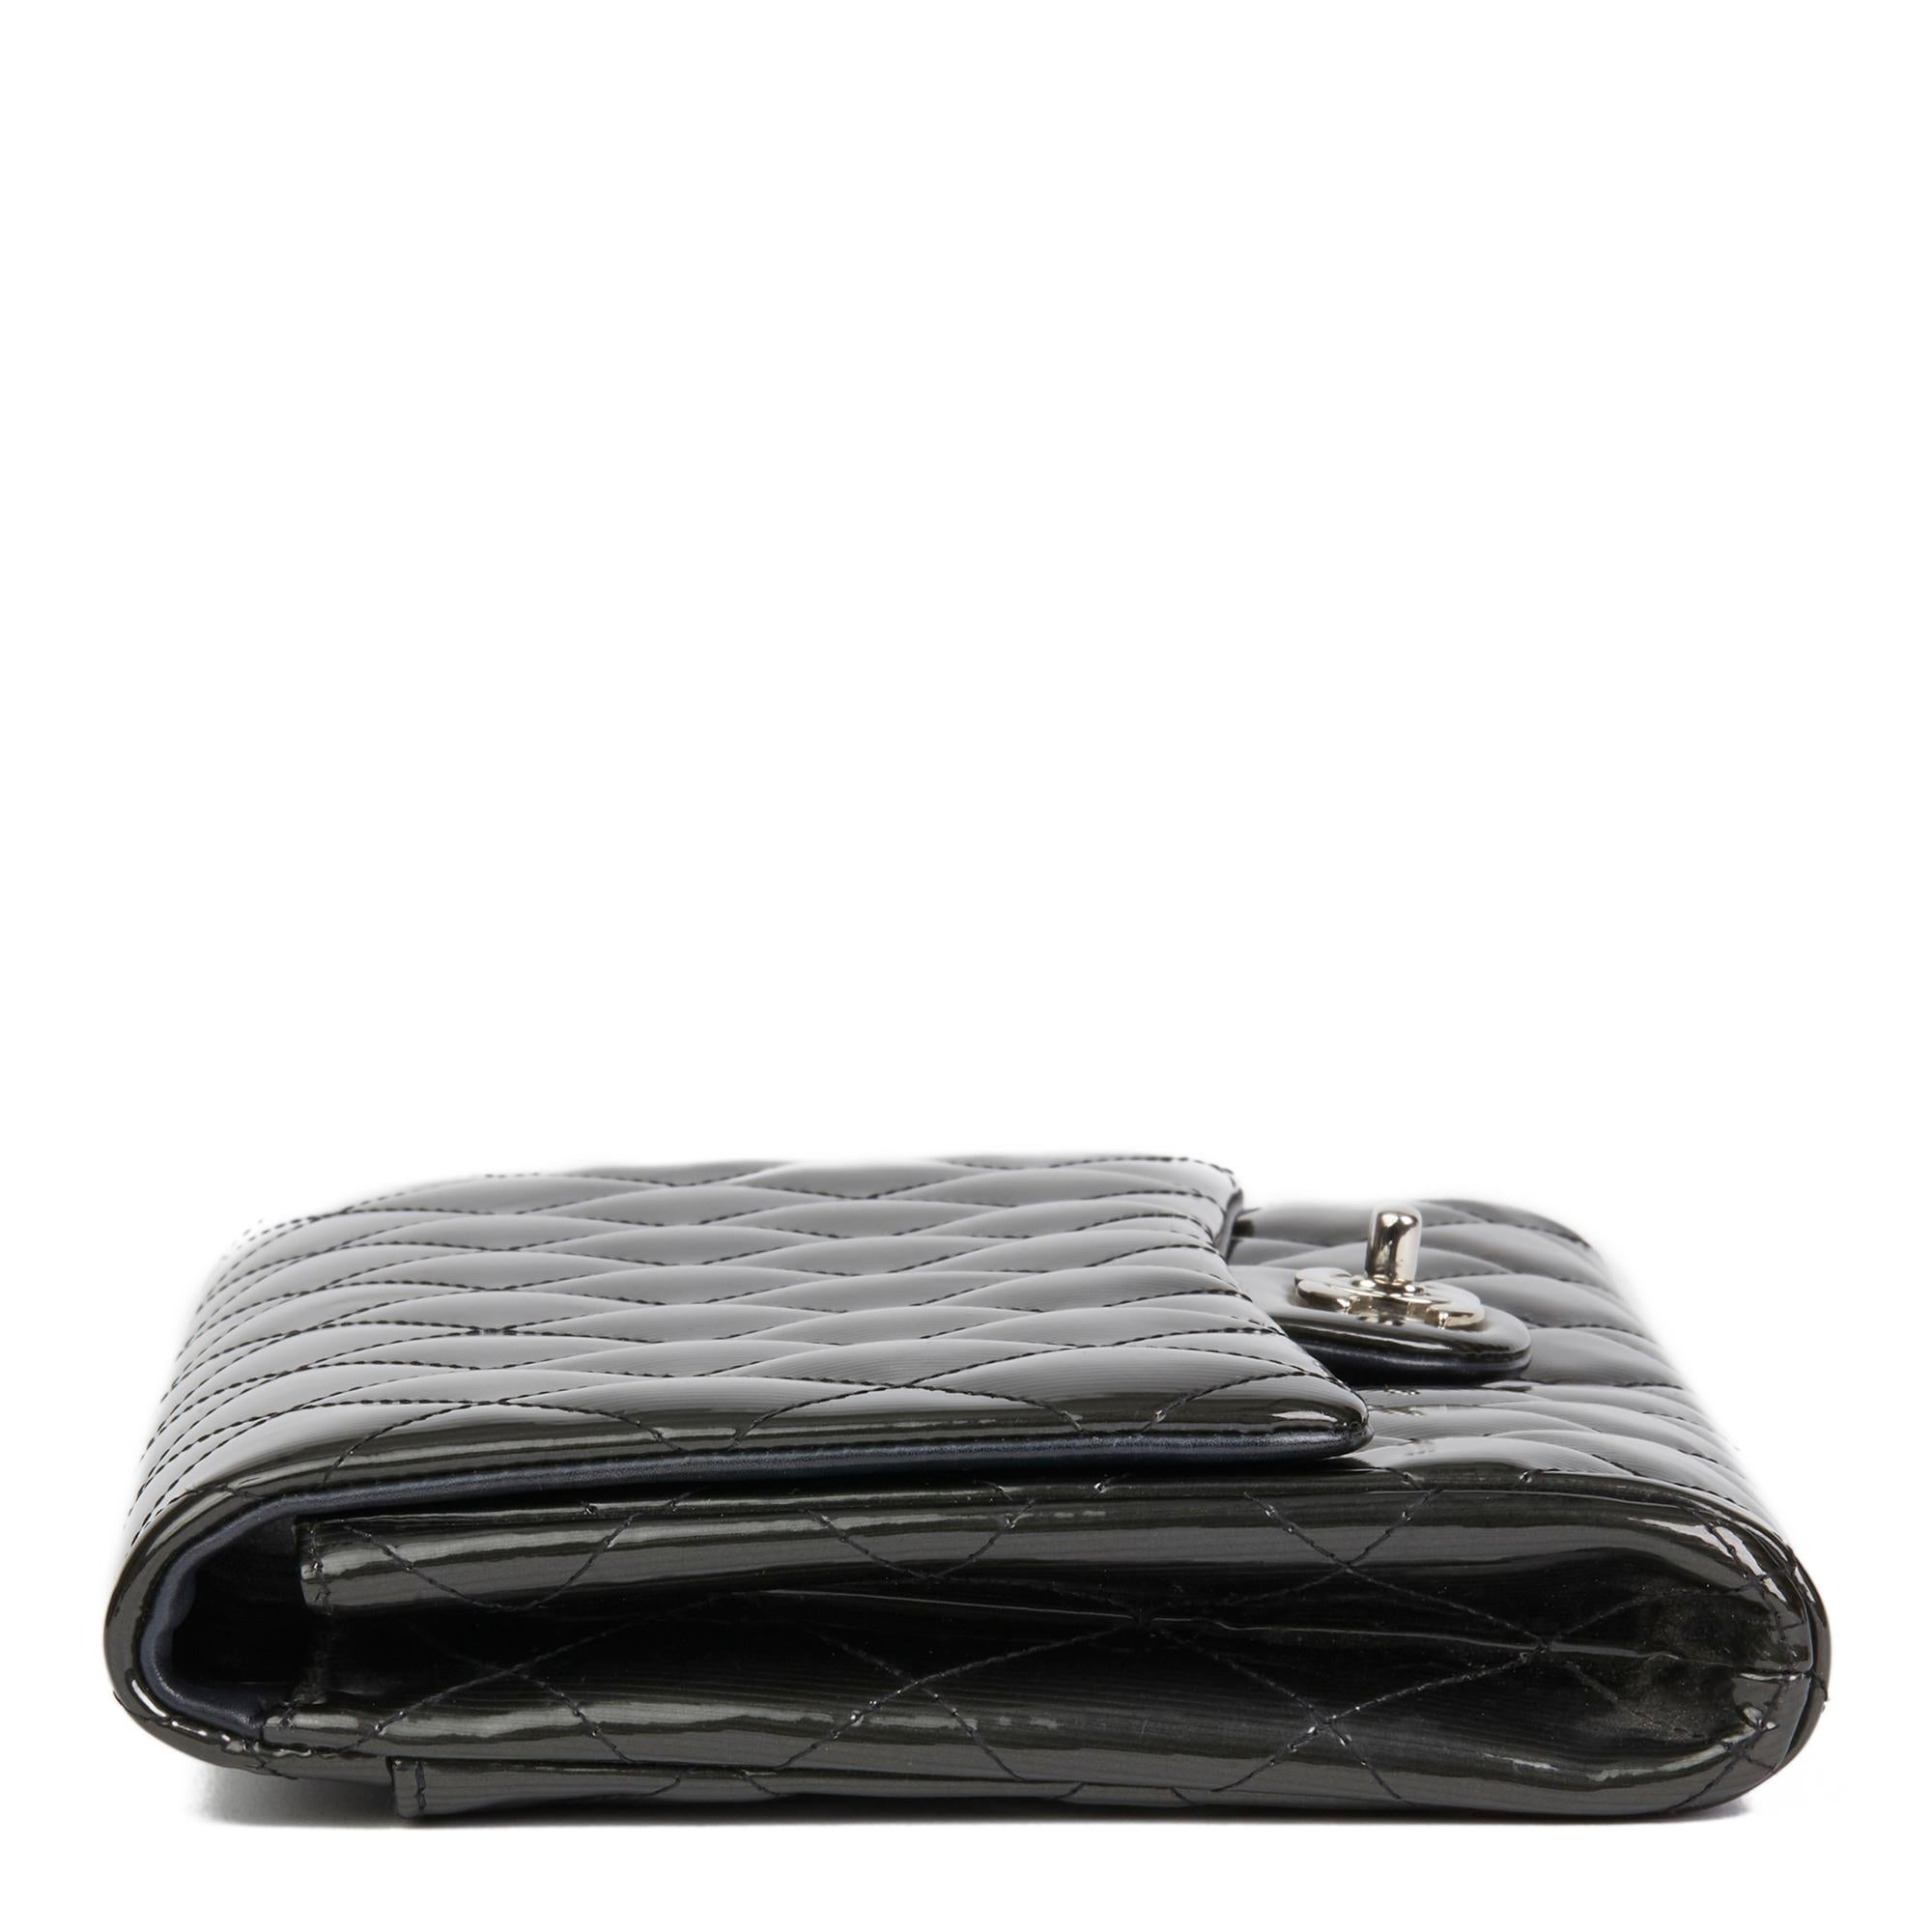 bb75d5b699c336 2012 Chanel Black Quilted Patent Leather Clutch-on-Chain at 1stdibs